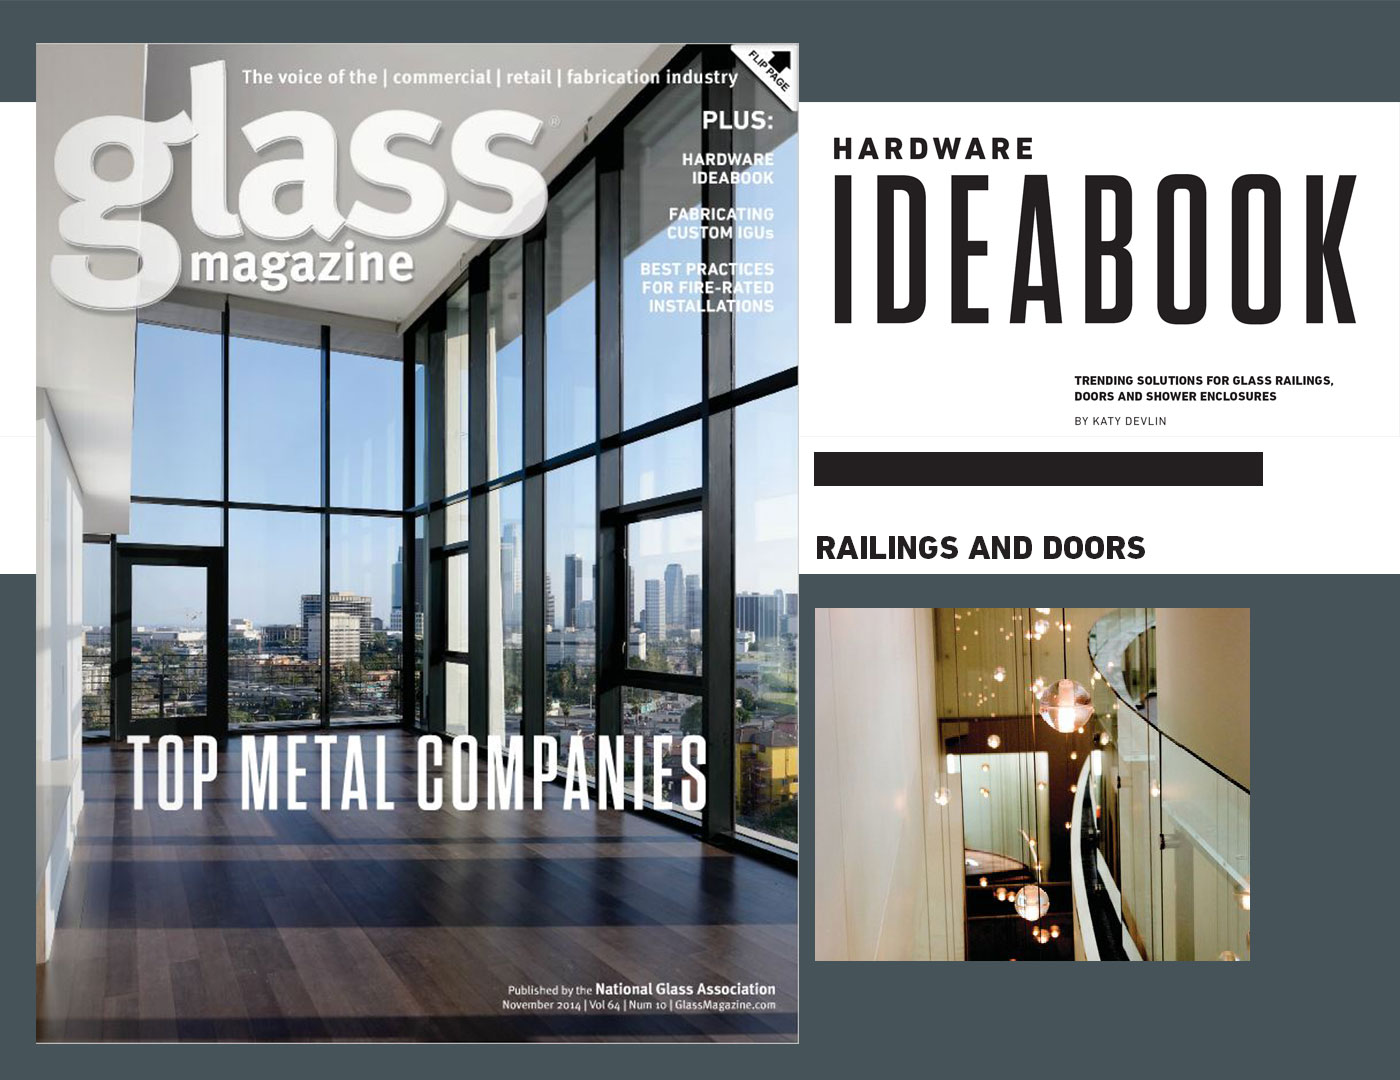 ArchitectuRAIL featured in Glass Magazine's Hardware: IdeaBook